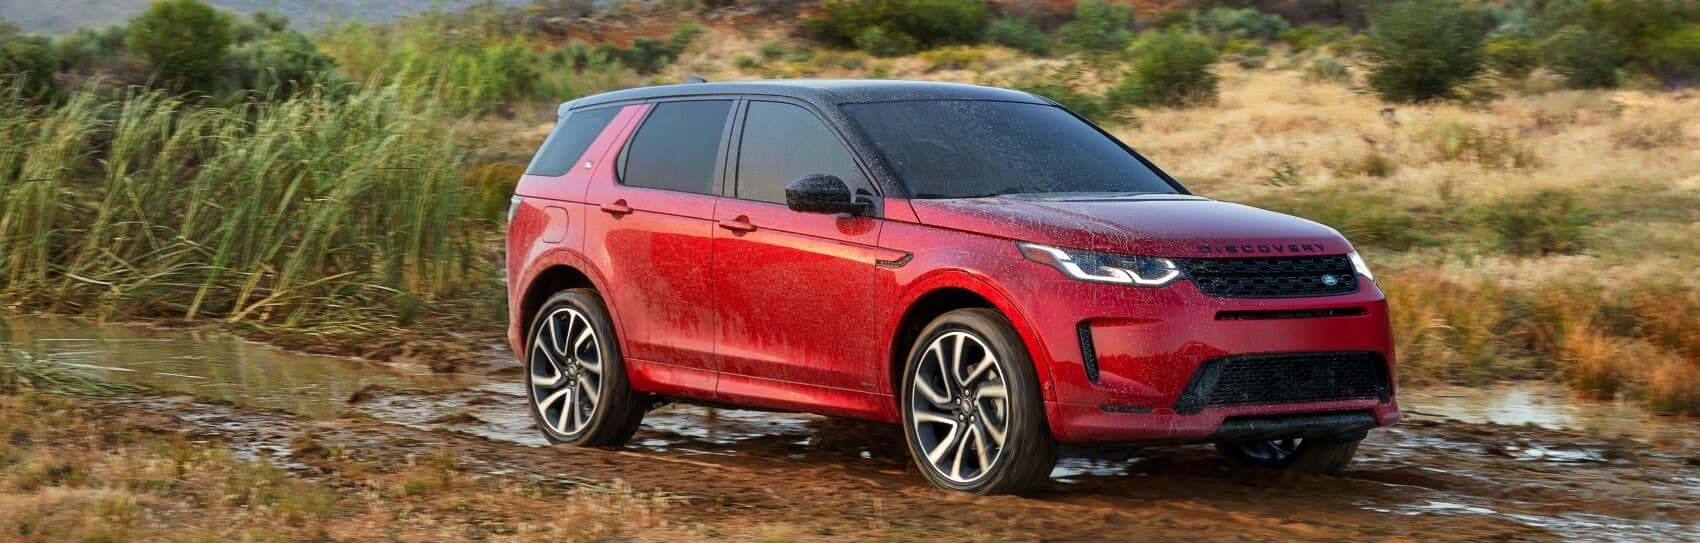 Land Rover Discovery Sport Trim Levels